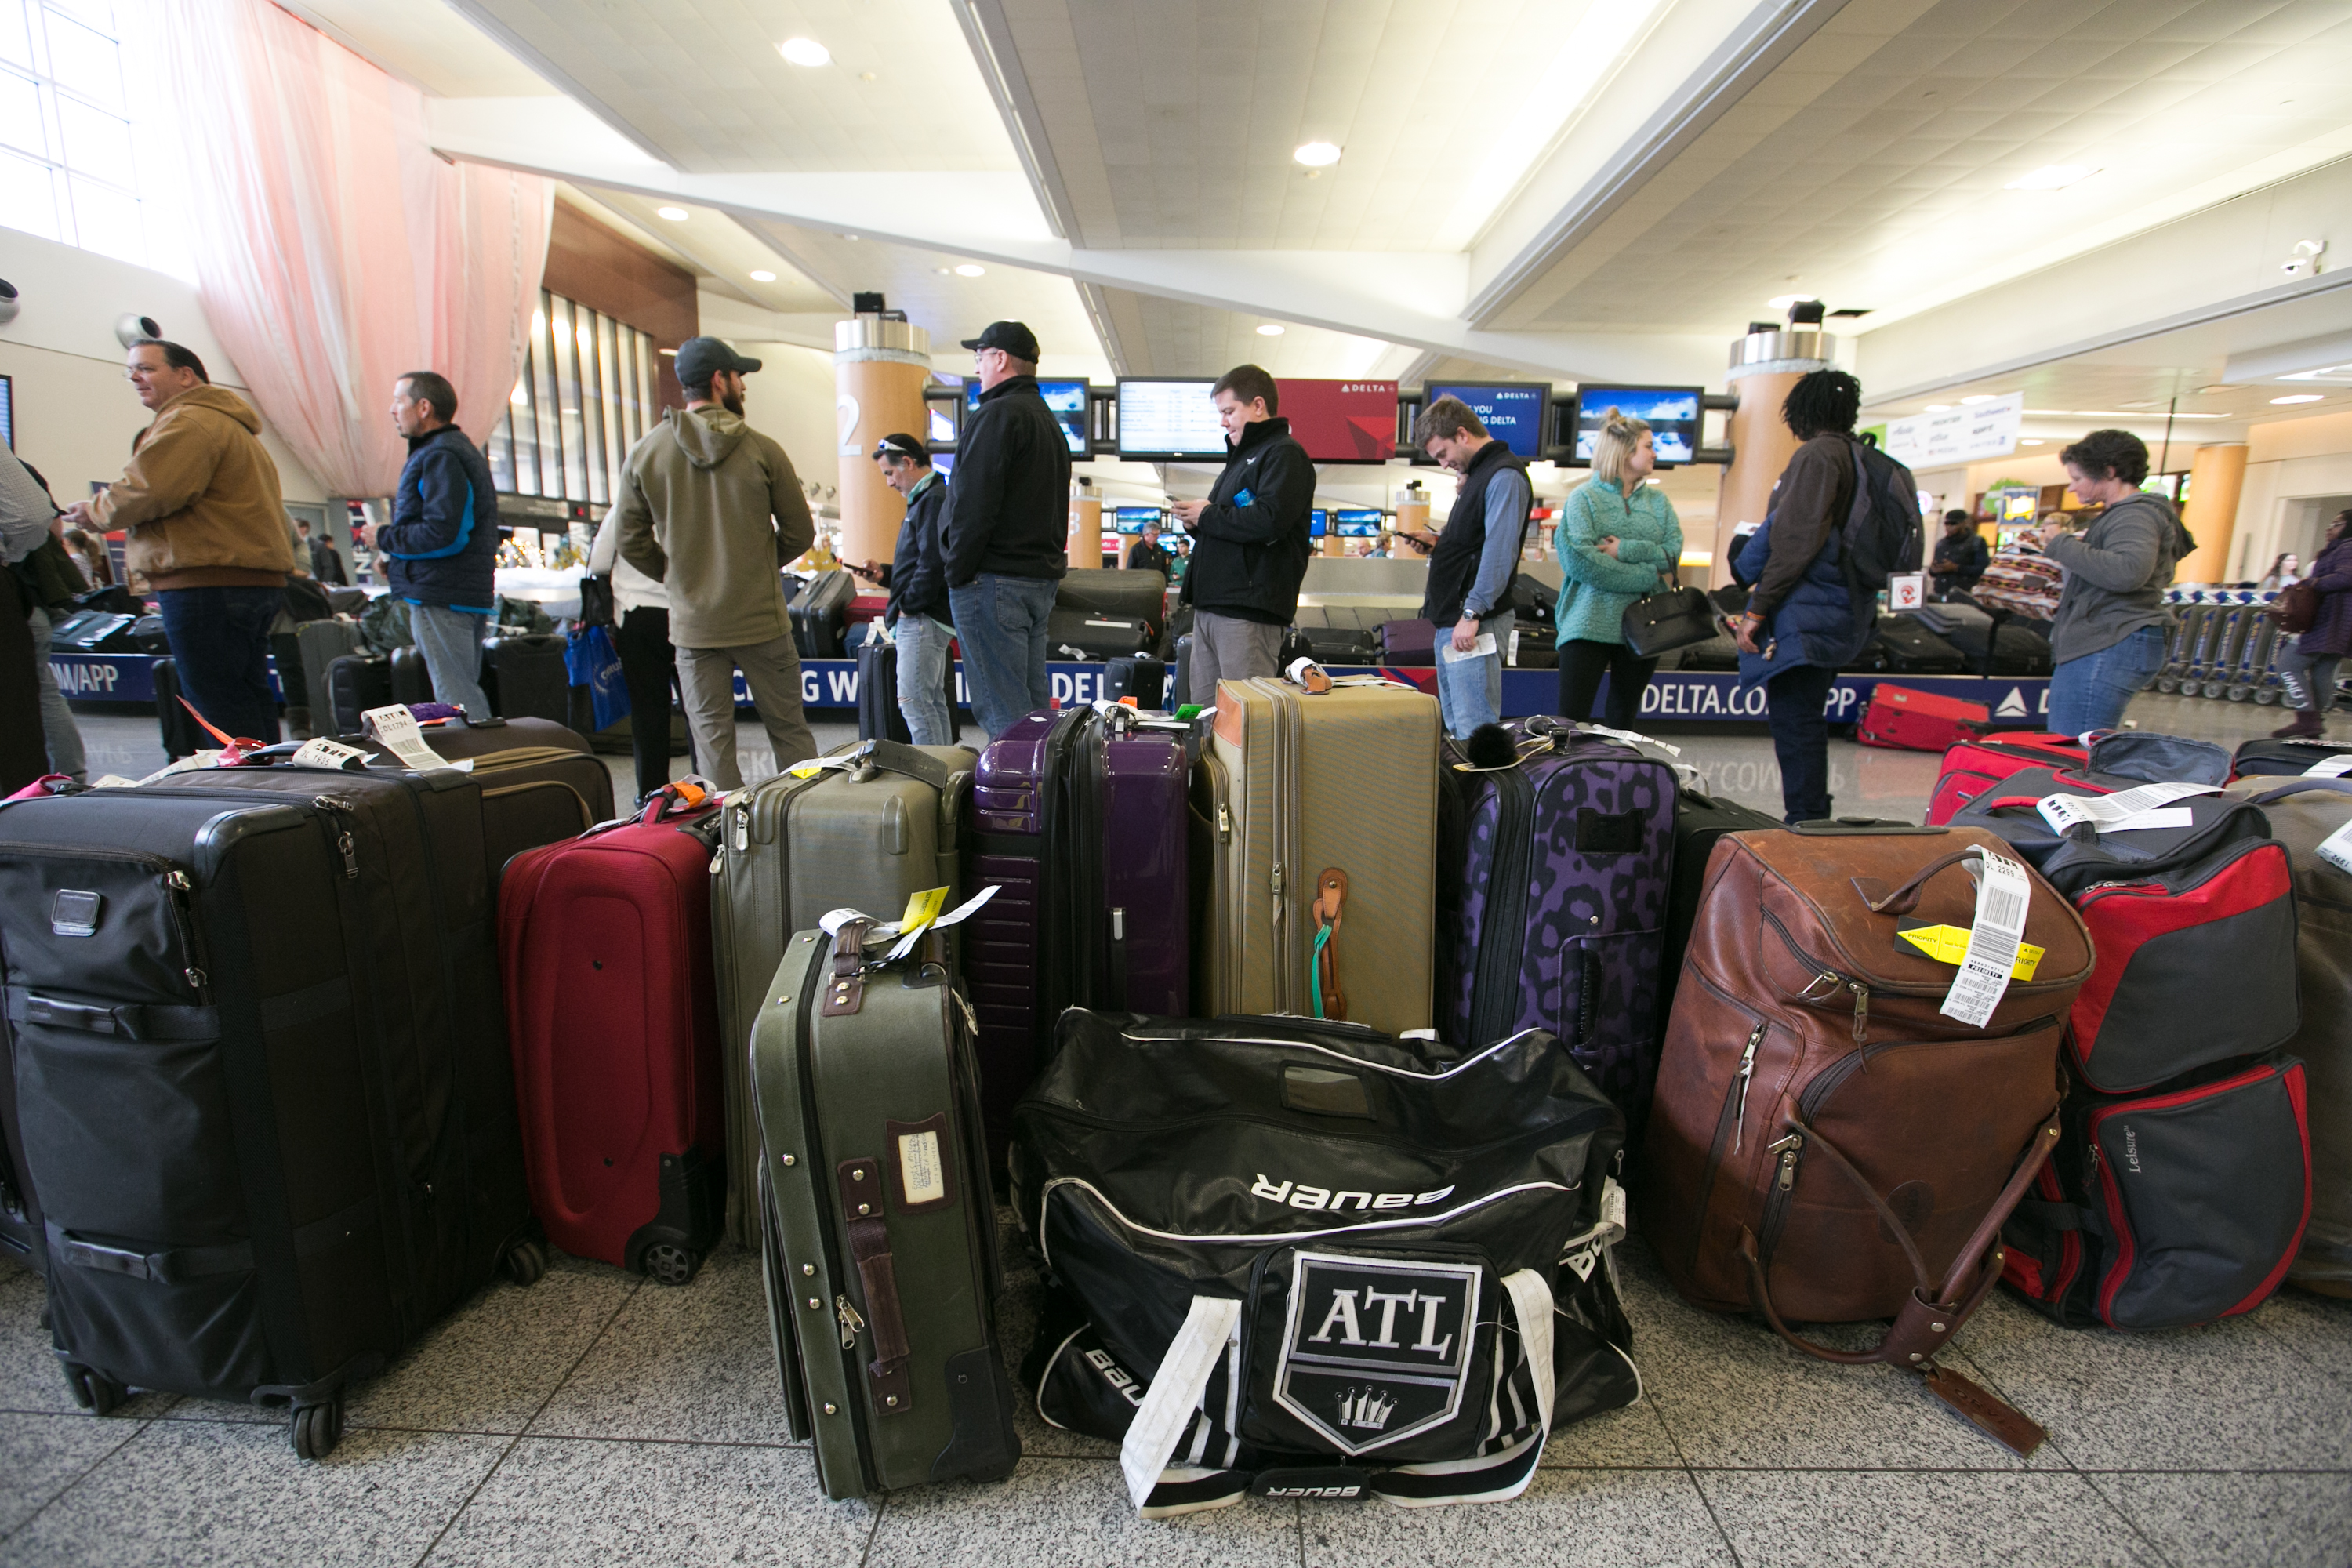 Passengers search for their luggage near rows of unclaimed baggage at Hartsfield-Jackson Atlanta International Airport on December 18, 2017 in Atlanta, Georgia. Jessica McGowan/Getty Images